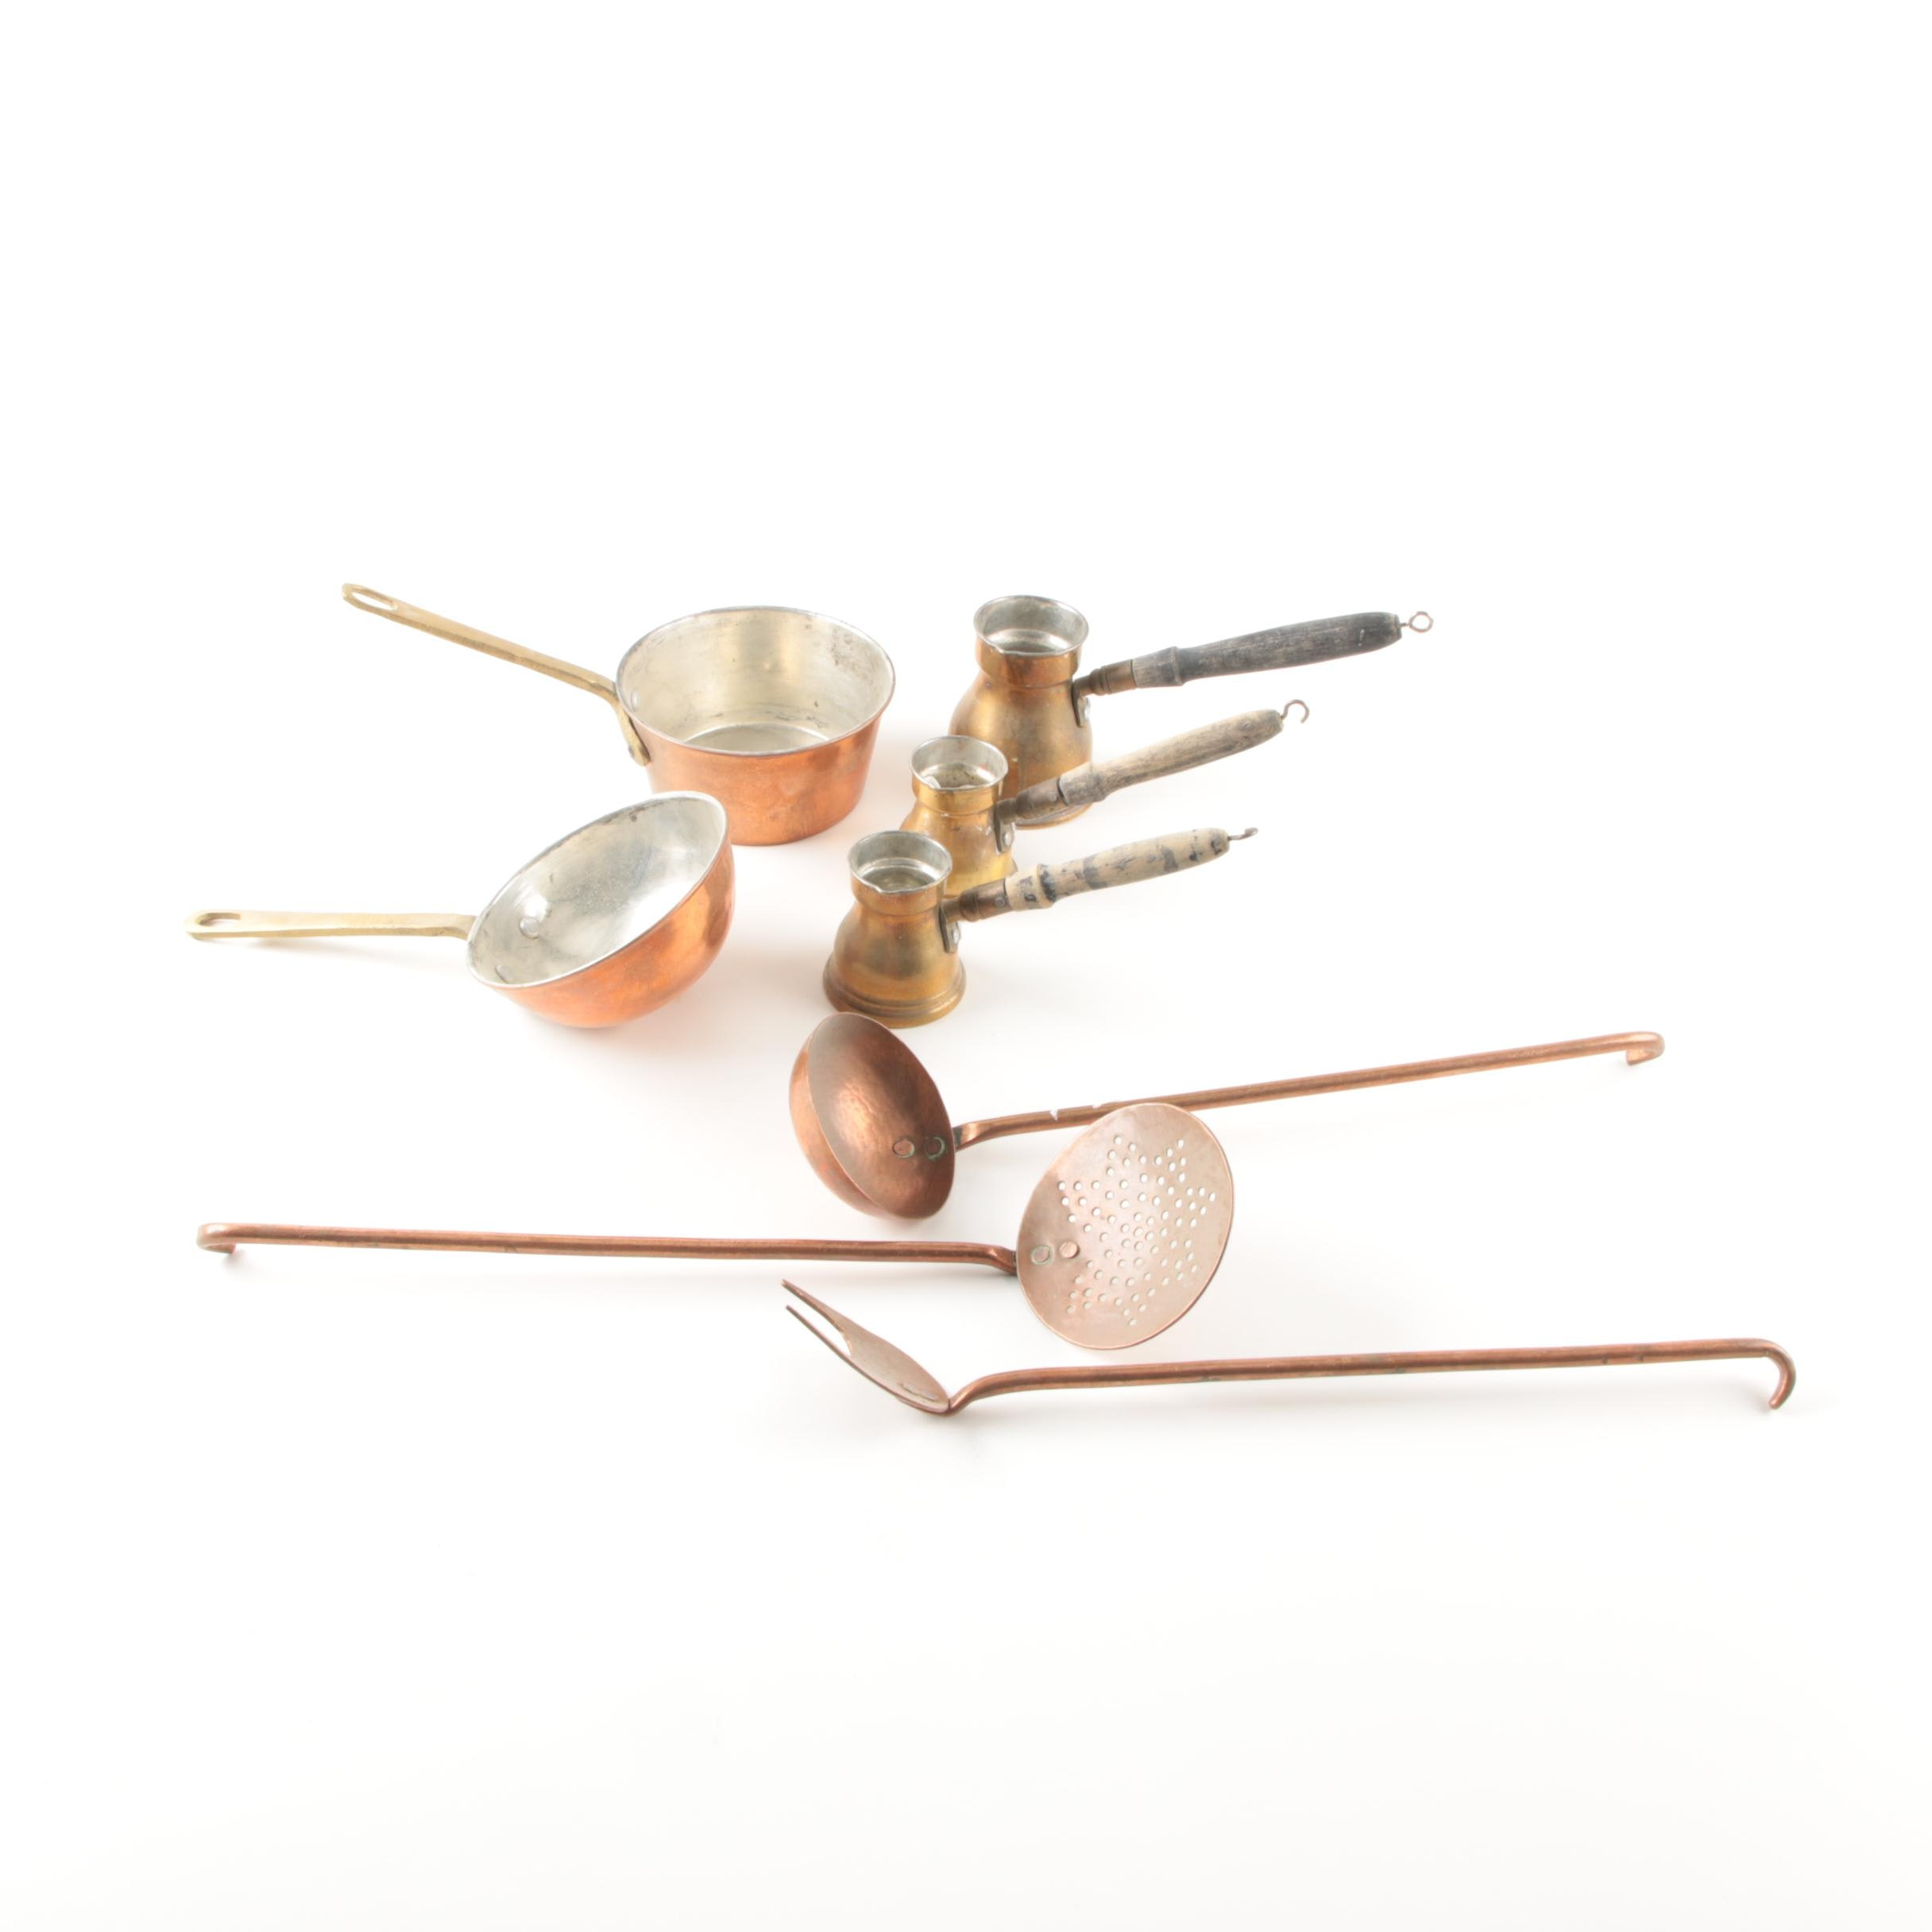 Vintage Brass and Copper Cooking Utensils